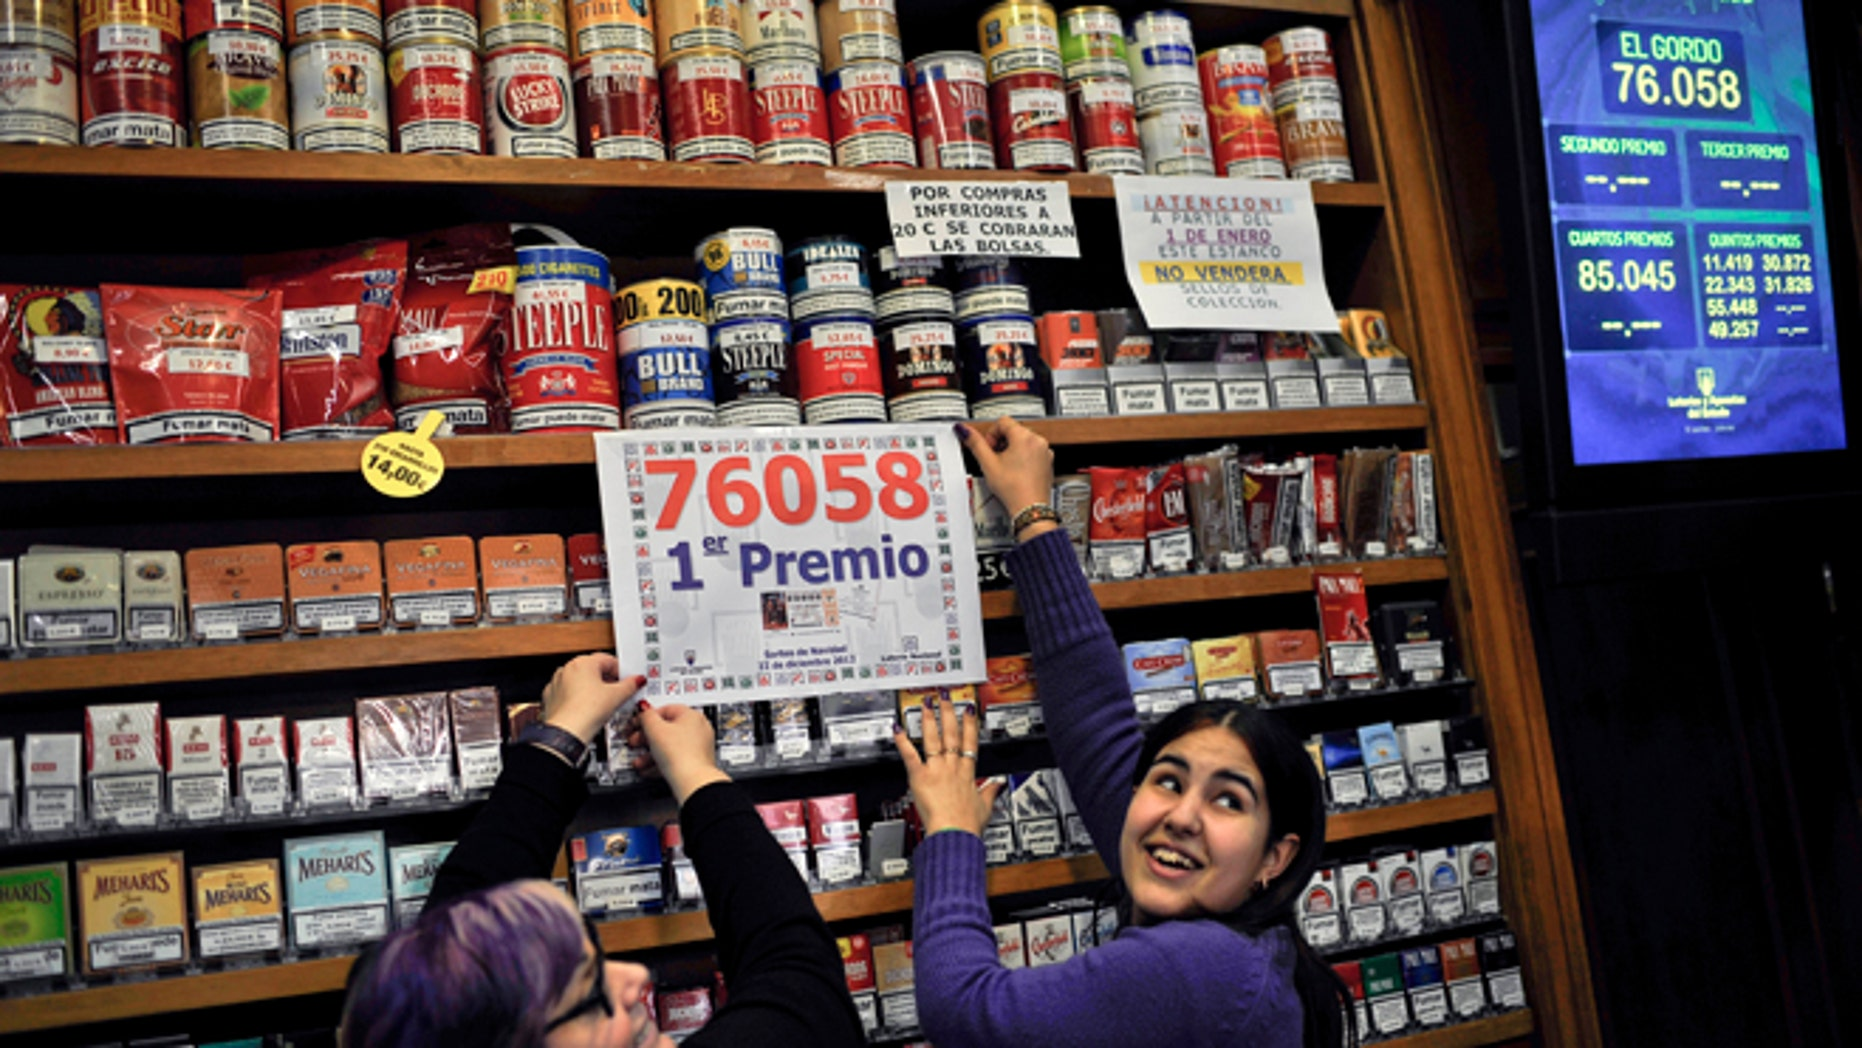 "Dec. 22, 2012: Laura Leon, 30, right, and Pili Medina, 48,  who sold one of the winning lottery tickets with the numbers, 76058, of the top prize of Spain's Christmas lottery known as ""El Gordo,"" celebrates in her lottery shop in the small town of Tudela, northern Spain."